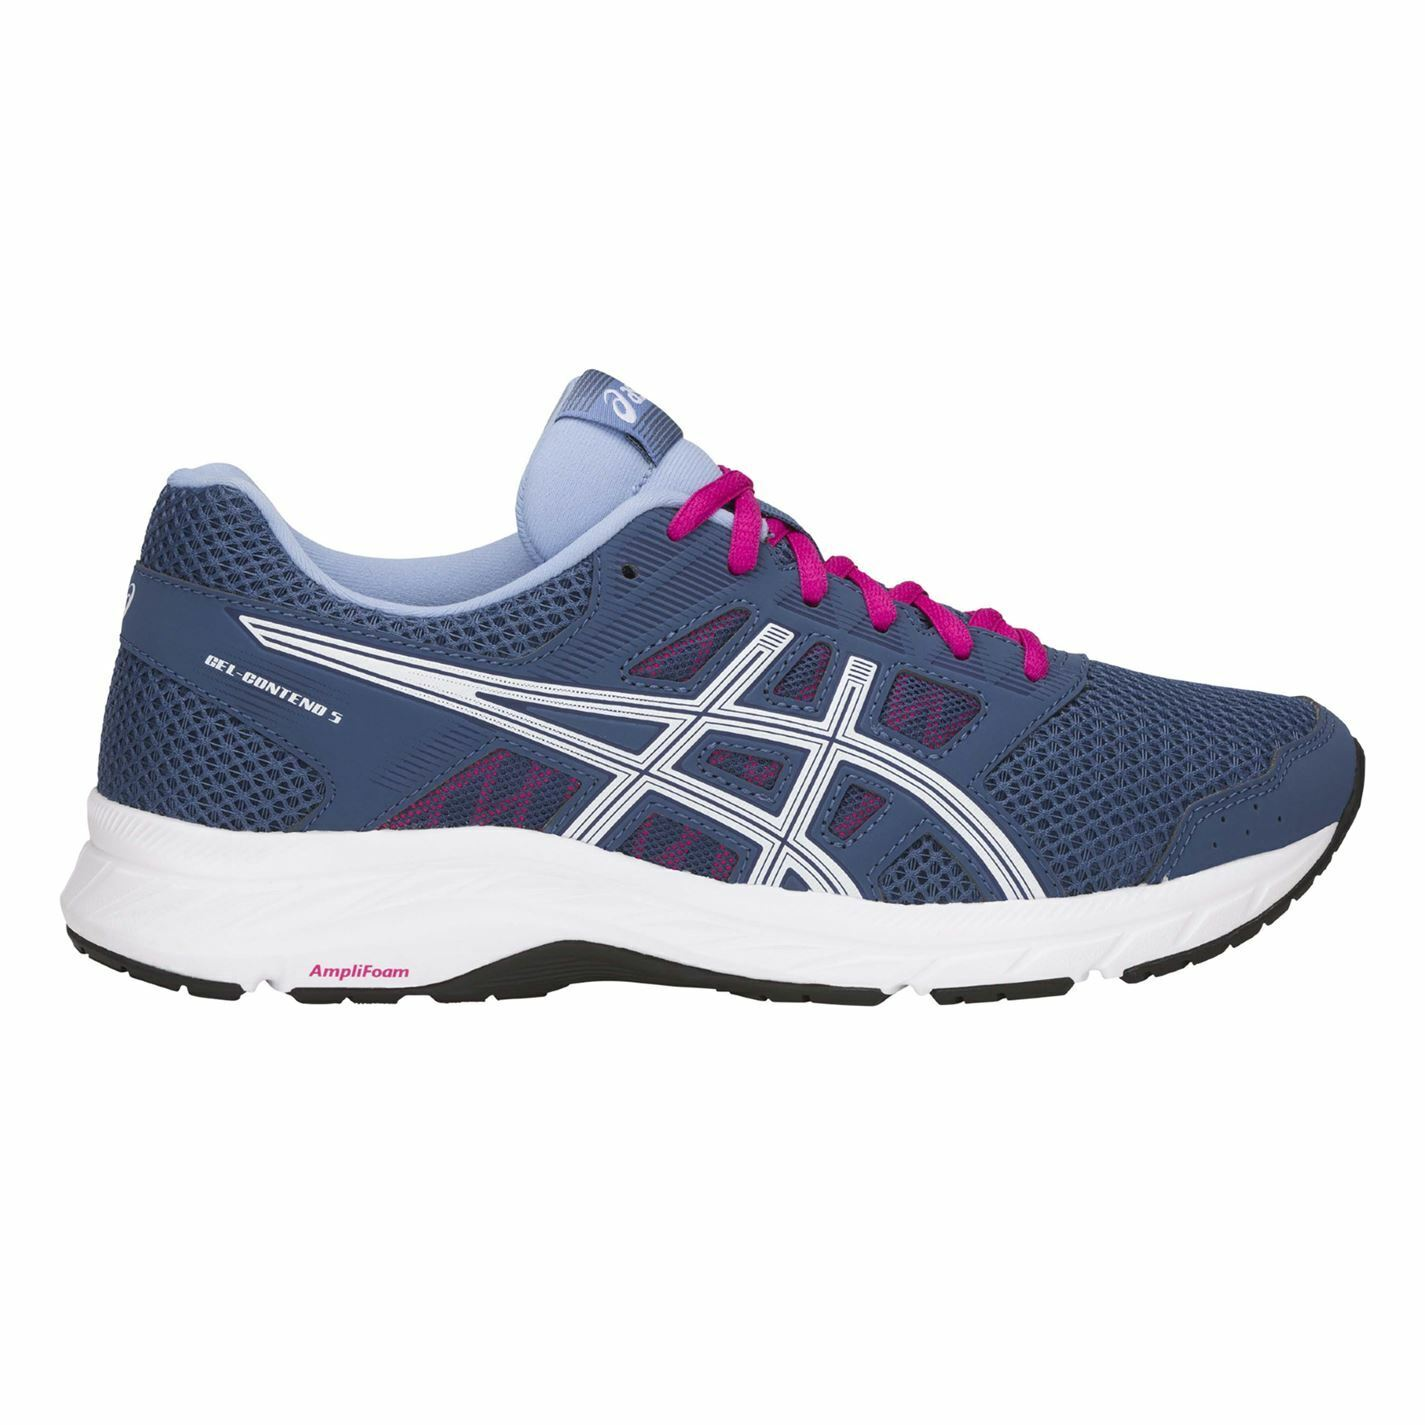 Asics Womens Gel Contend Runners